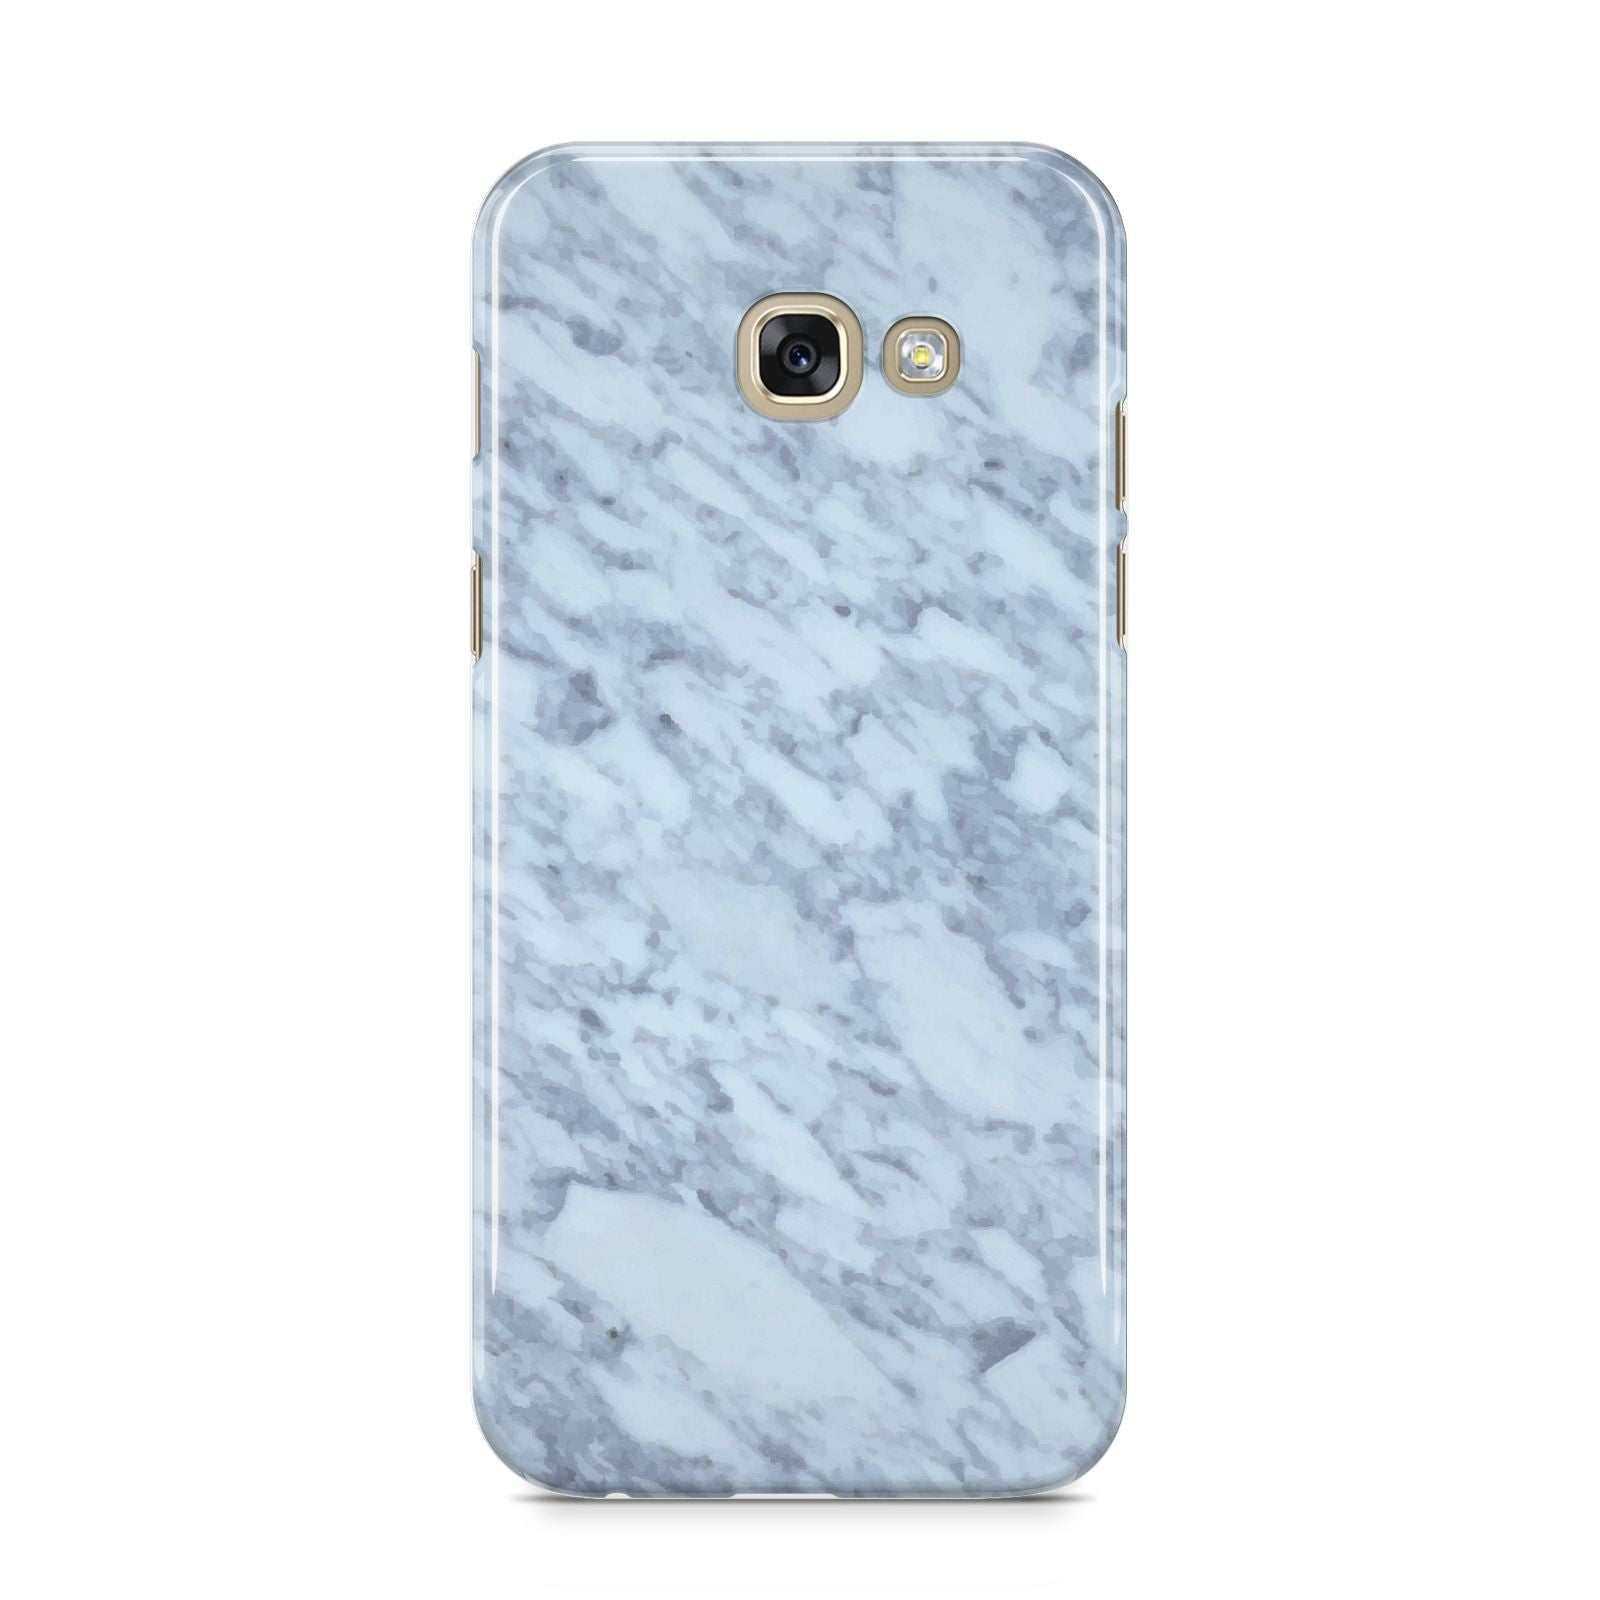 Faux Marble Grey 2 Samsung Galaxy A5 2017 Case on gold phone